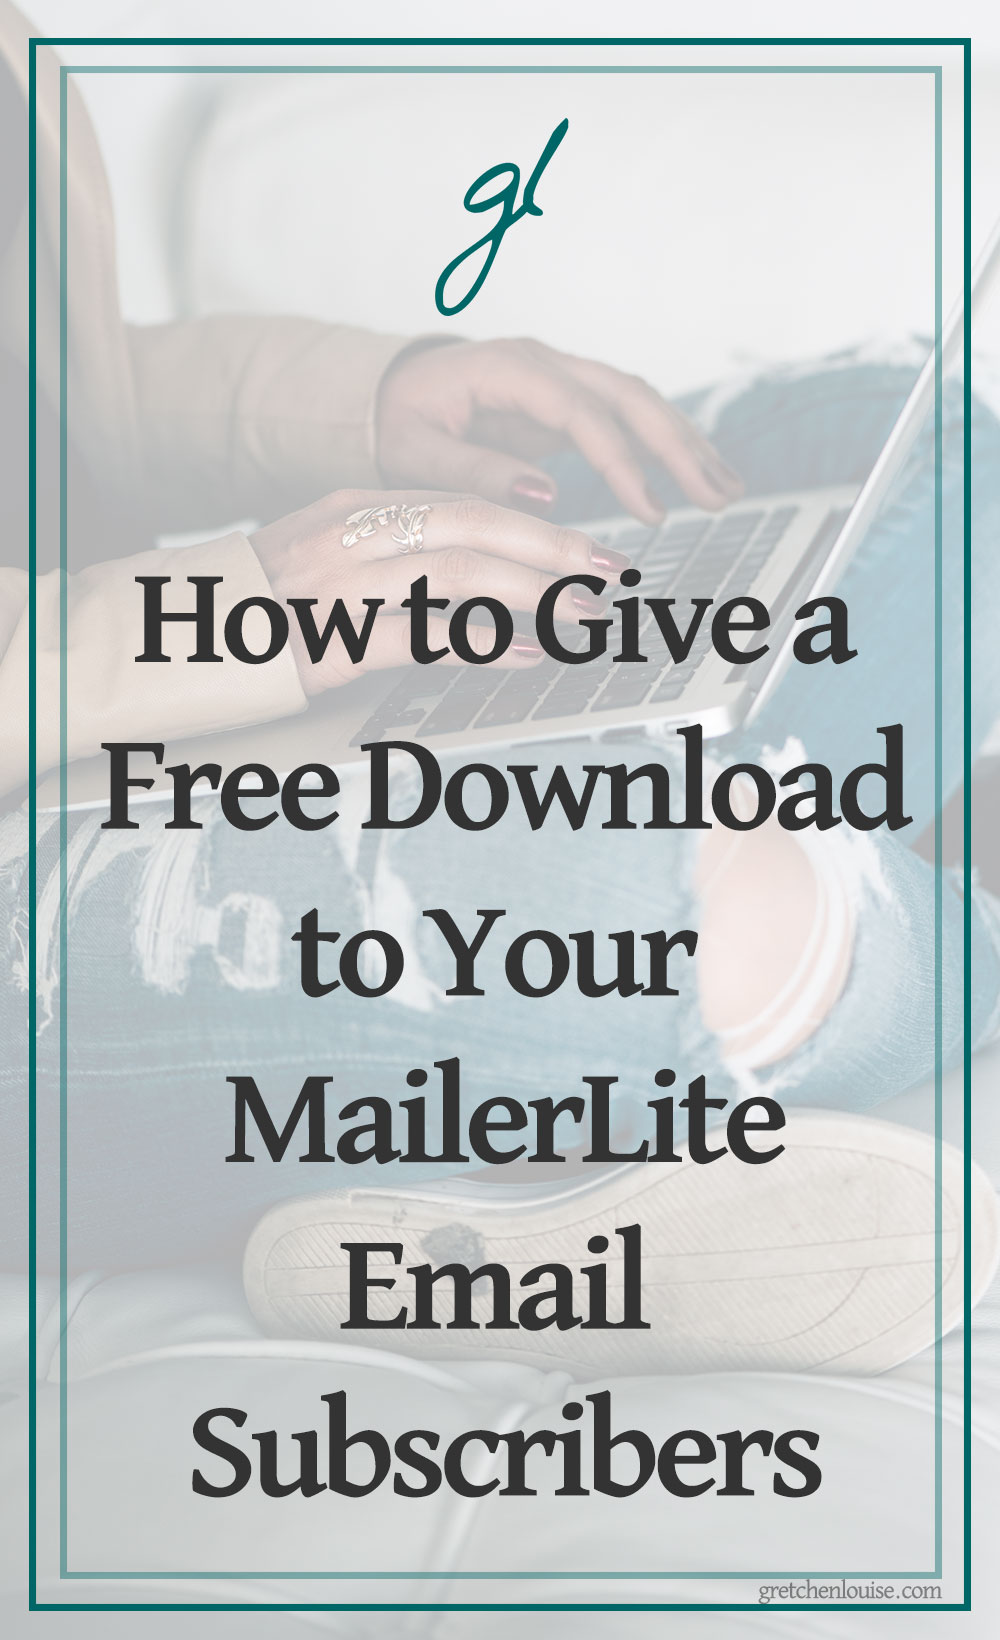 Looking for an email service that is free for small lists but has the option of multi-email welcome automations? Want to give a free download to your MailerLite emails but don't know where to start? Here are step-by-step instructions and screenshots to help you get it done. via @GretLouise